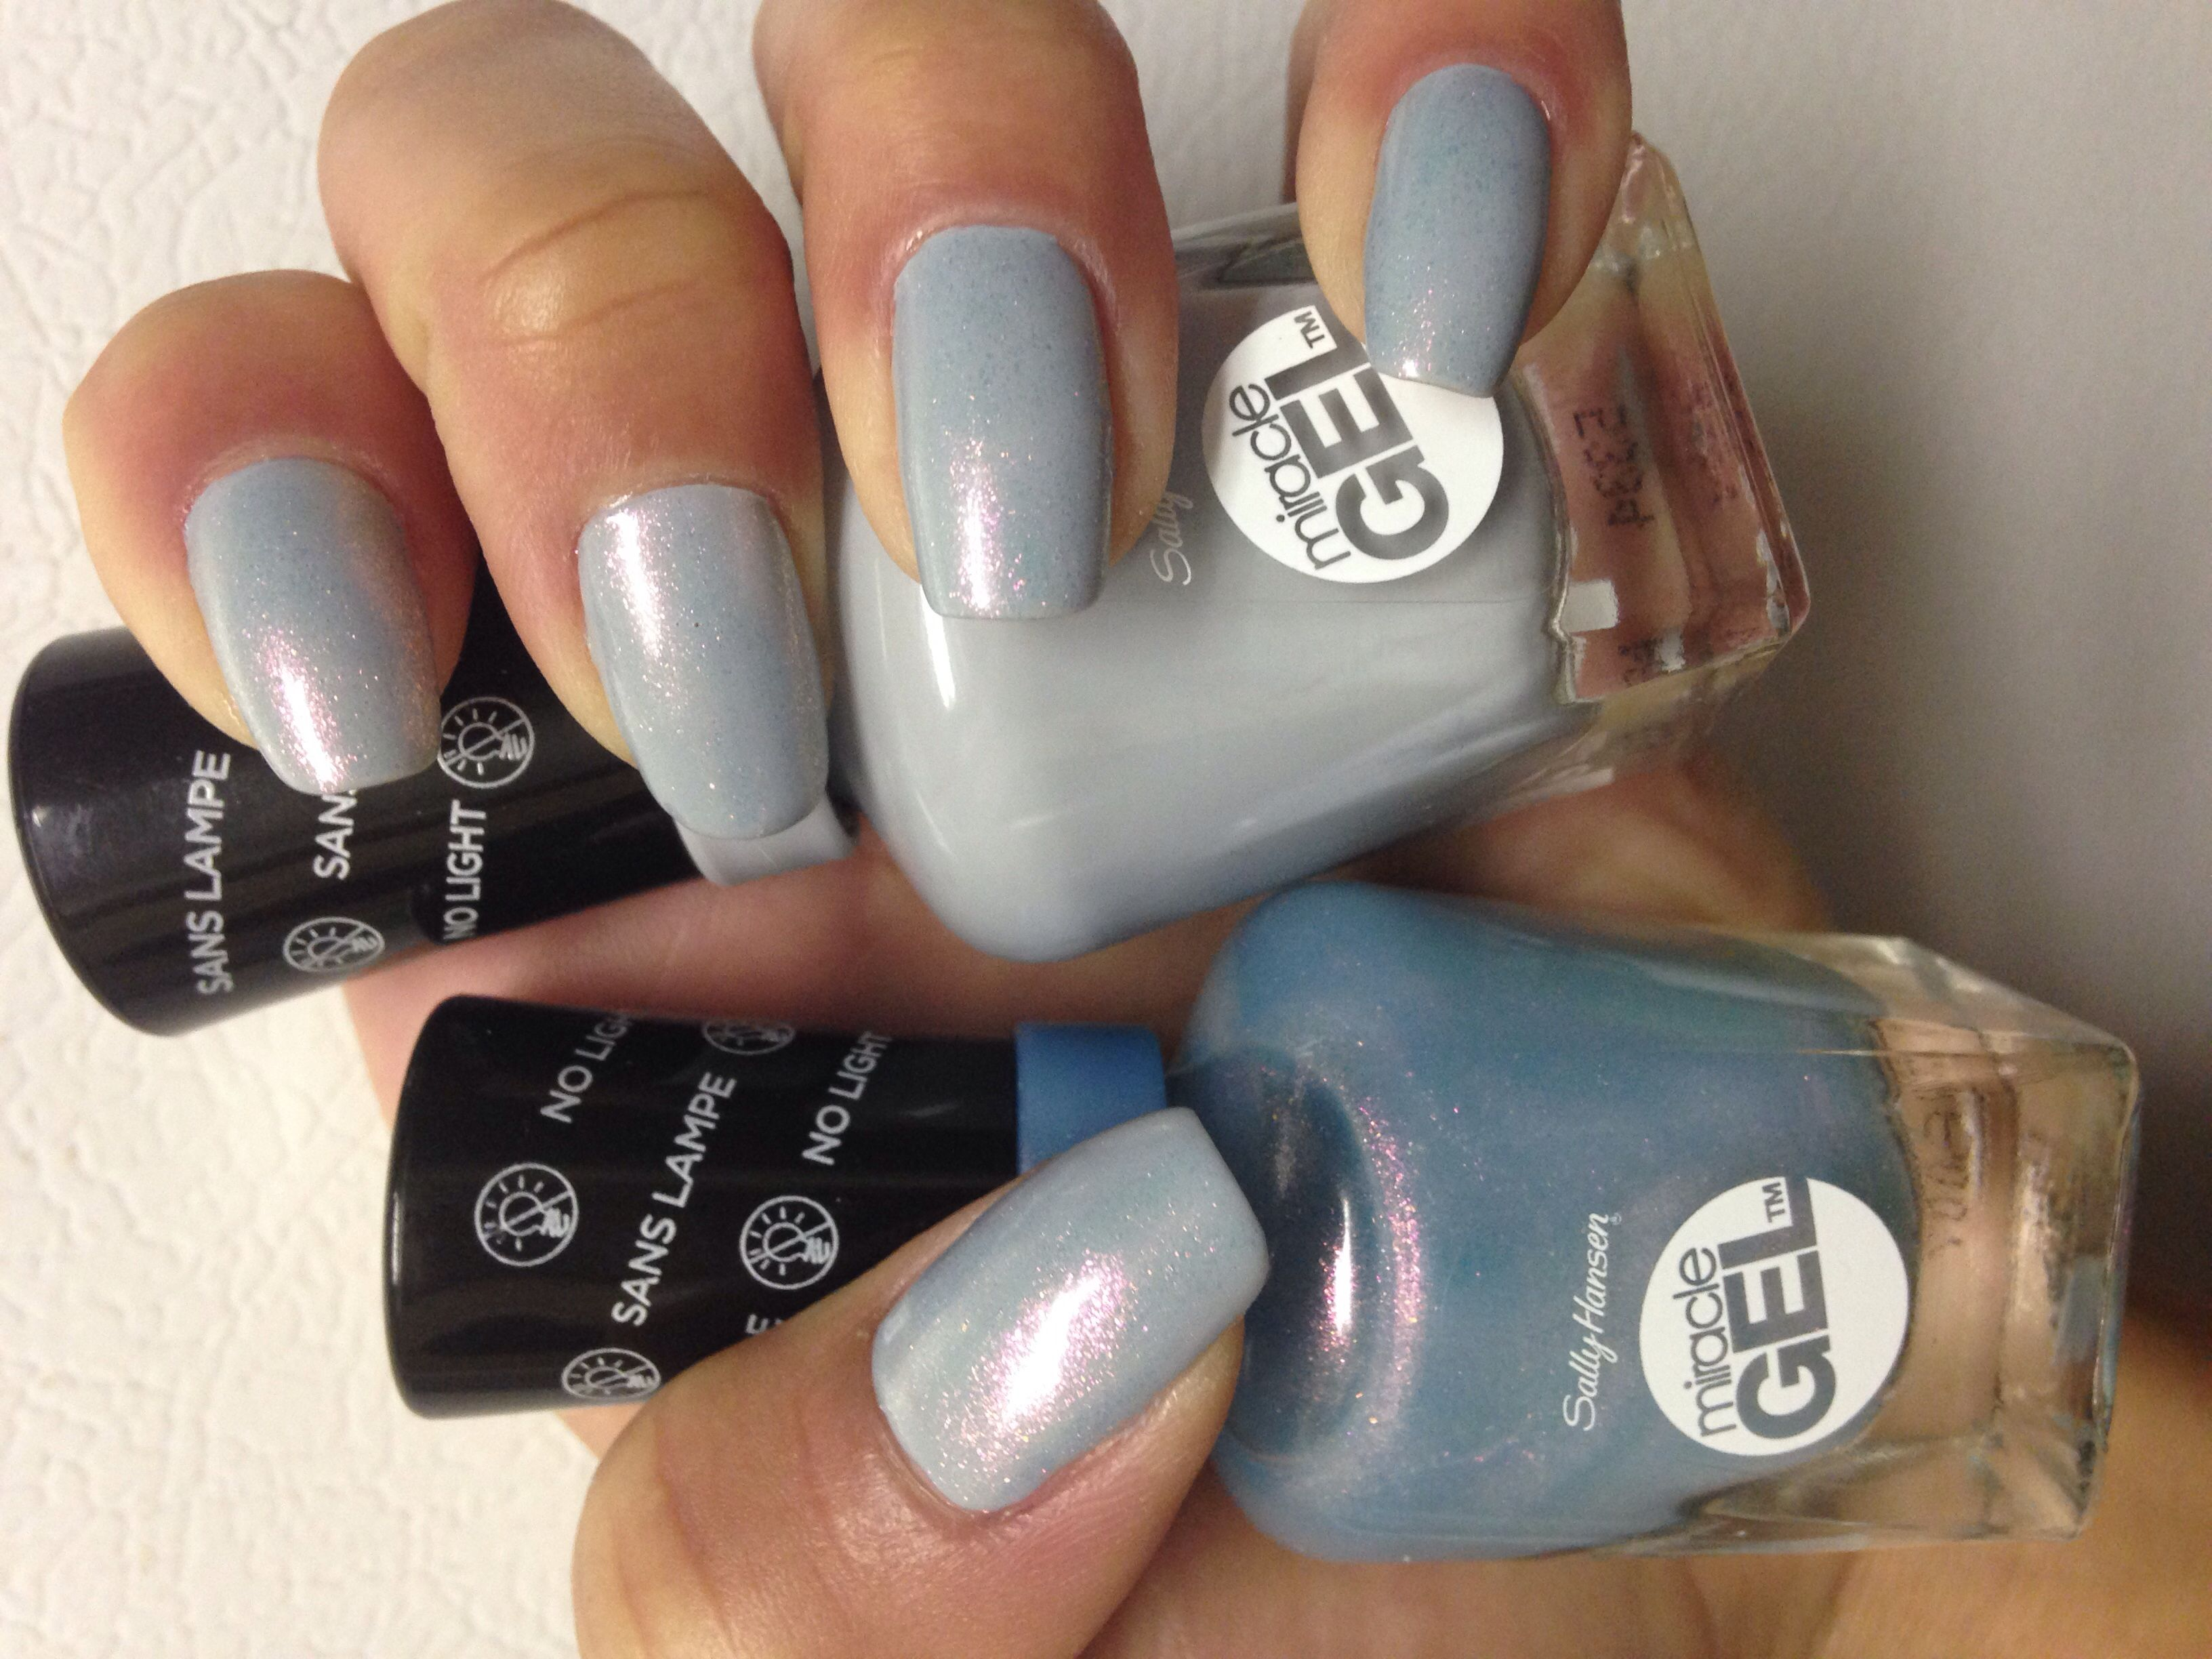 Sally Hansen gel nail polish in the colors Lets Get Digital and ...